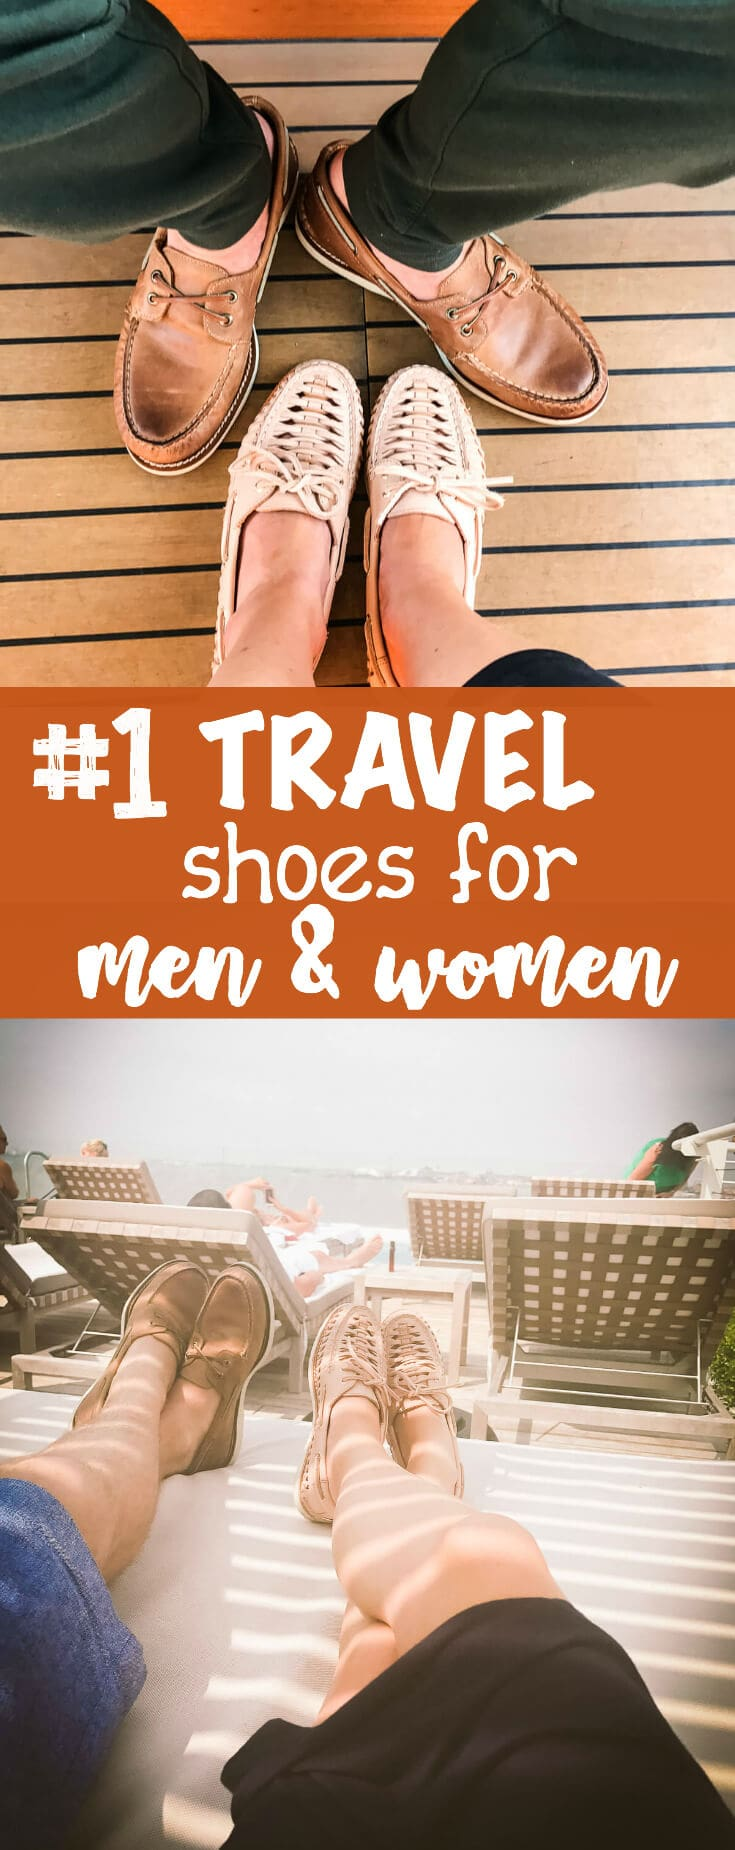 What are the best travel shoes for men and women that are comfortable and fashionable? We have an answer, the number one travel shoes for men and women.